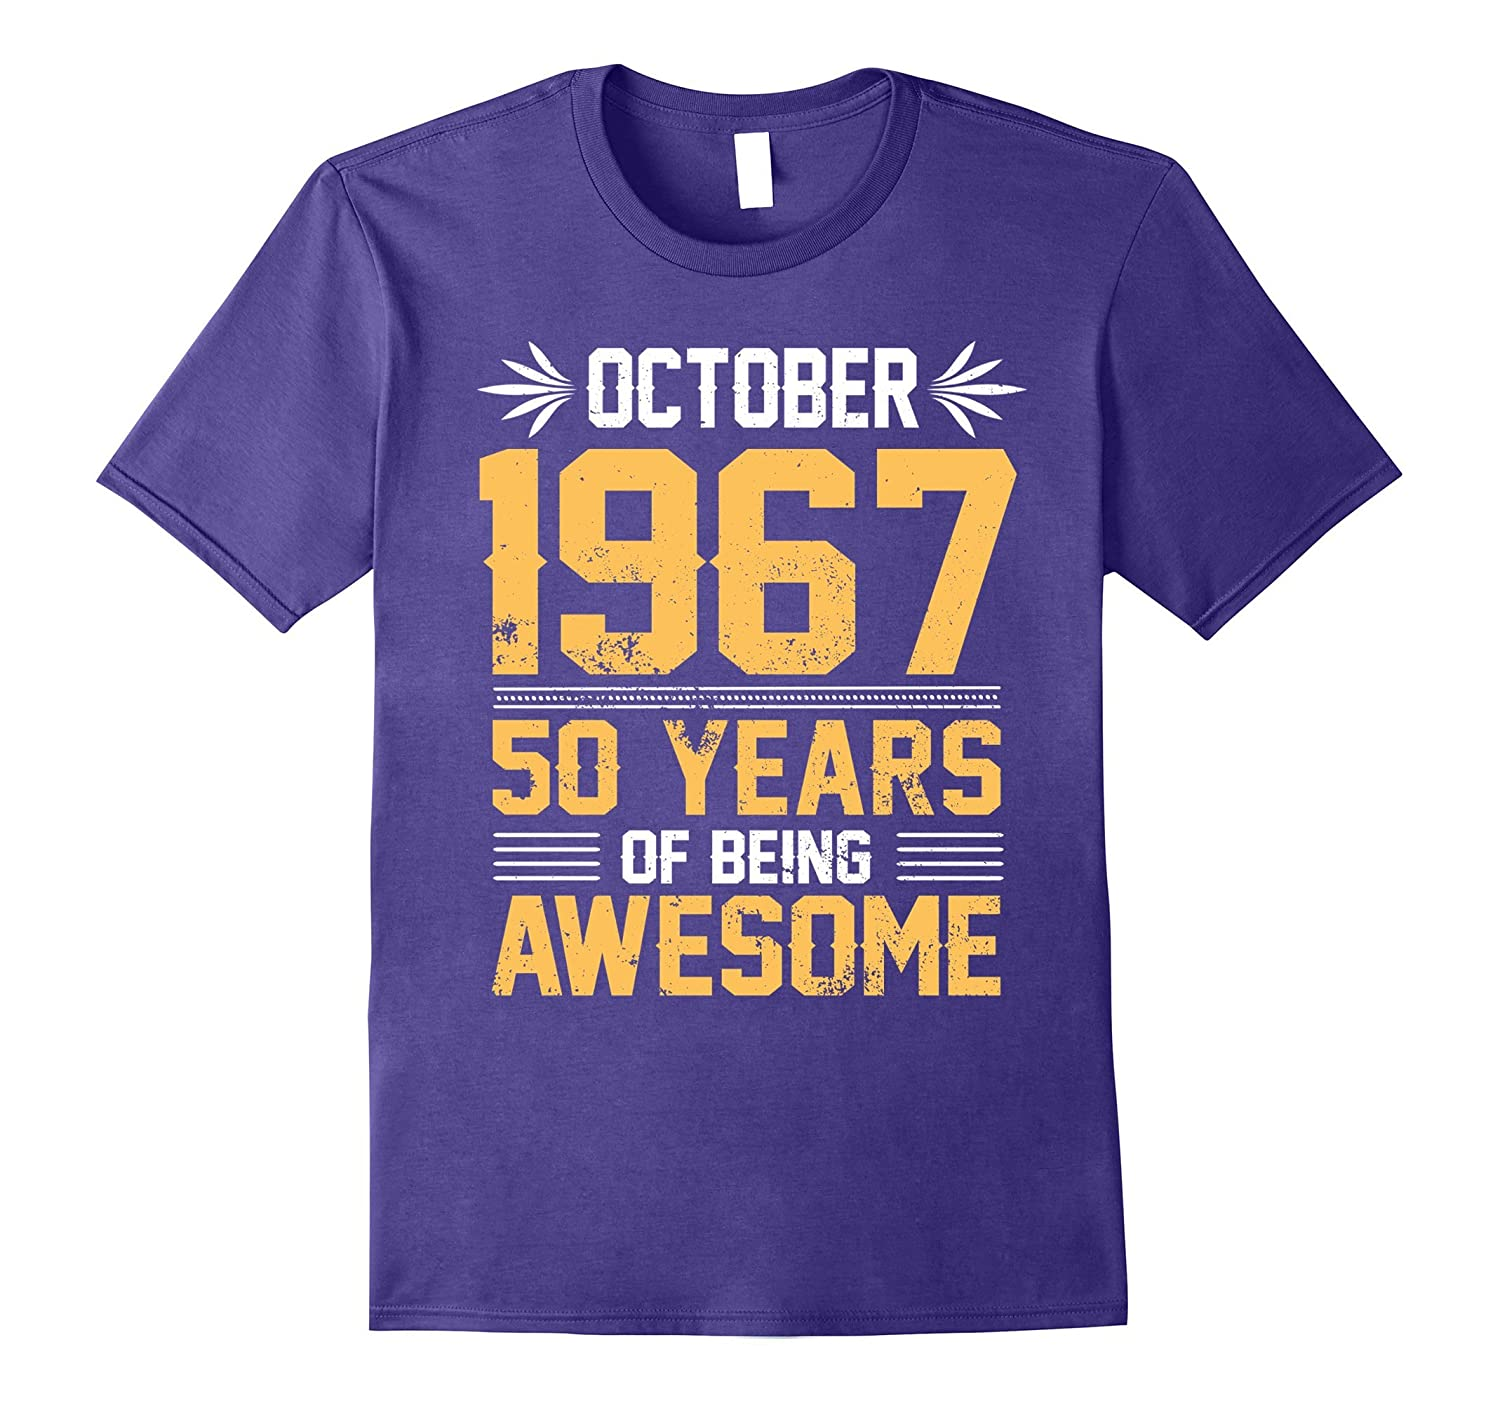 Legends Born In October 1967 50 Years Old Of Being Awesome-TJ